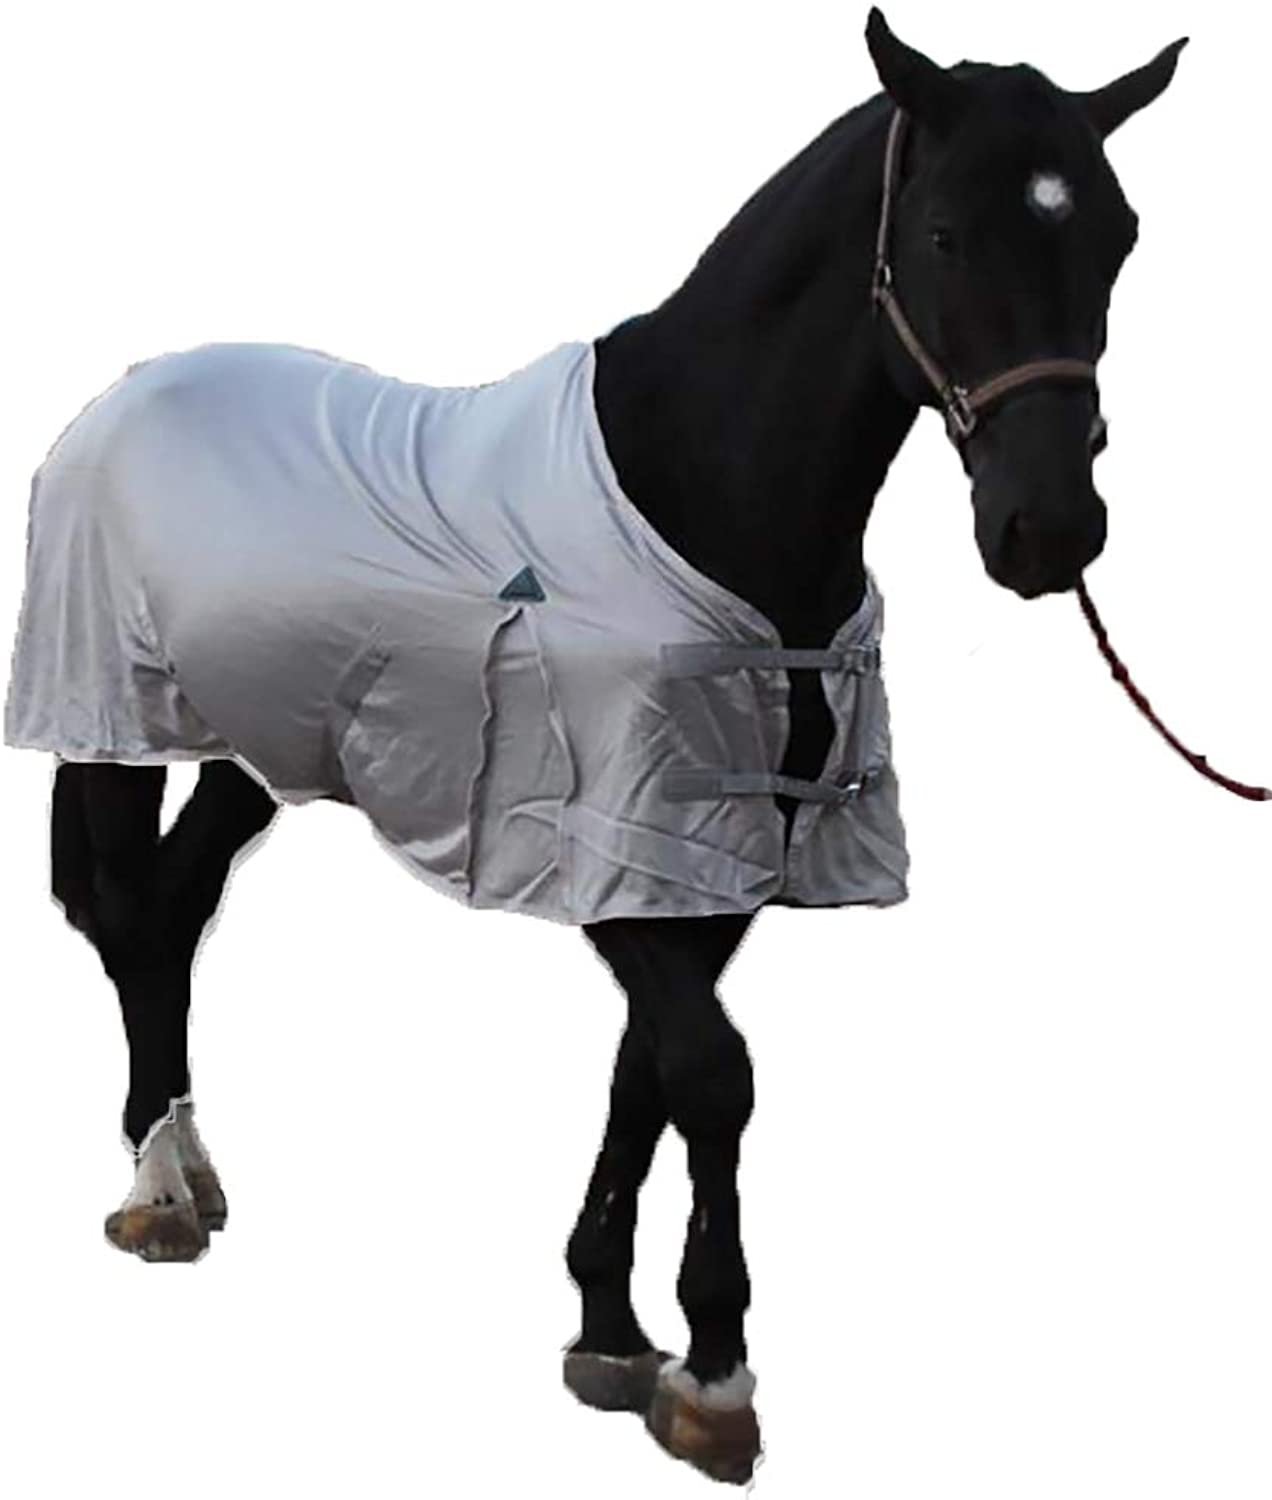 FXQIN Breathable Nylon Turnout Blanket Horse And Pony Sizes, Prevention Of Mosquitoes & Antitear Essential Standard Neck Lite